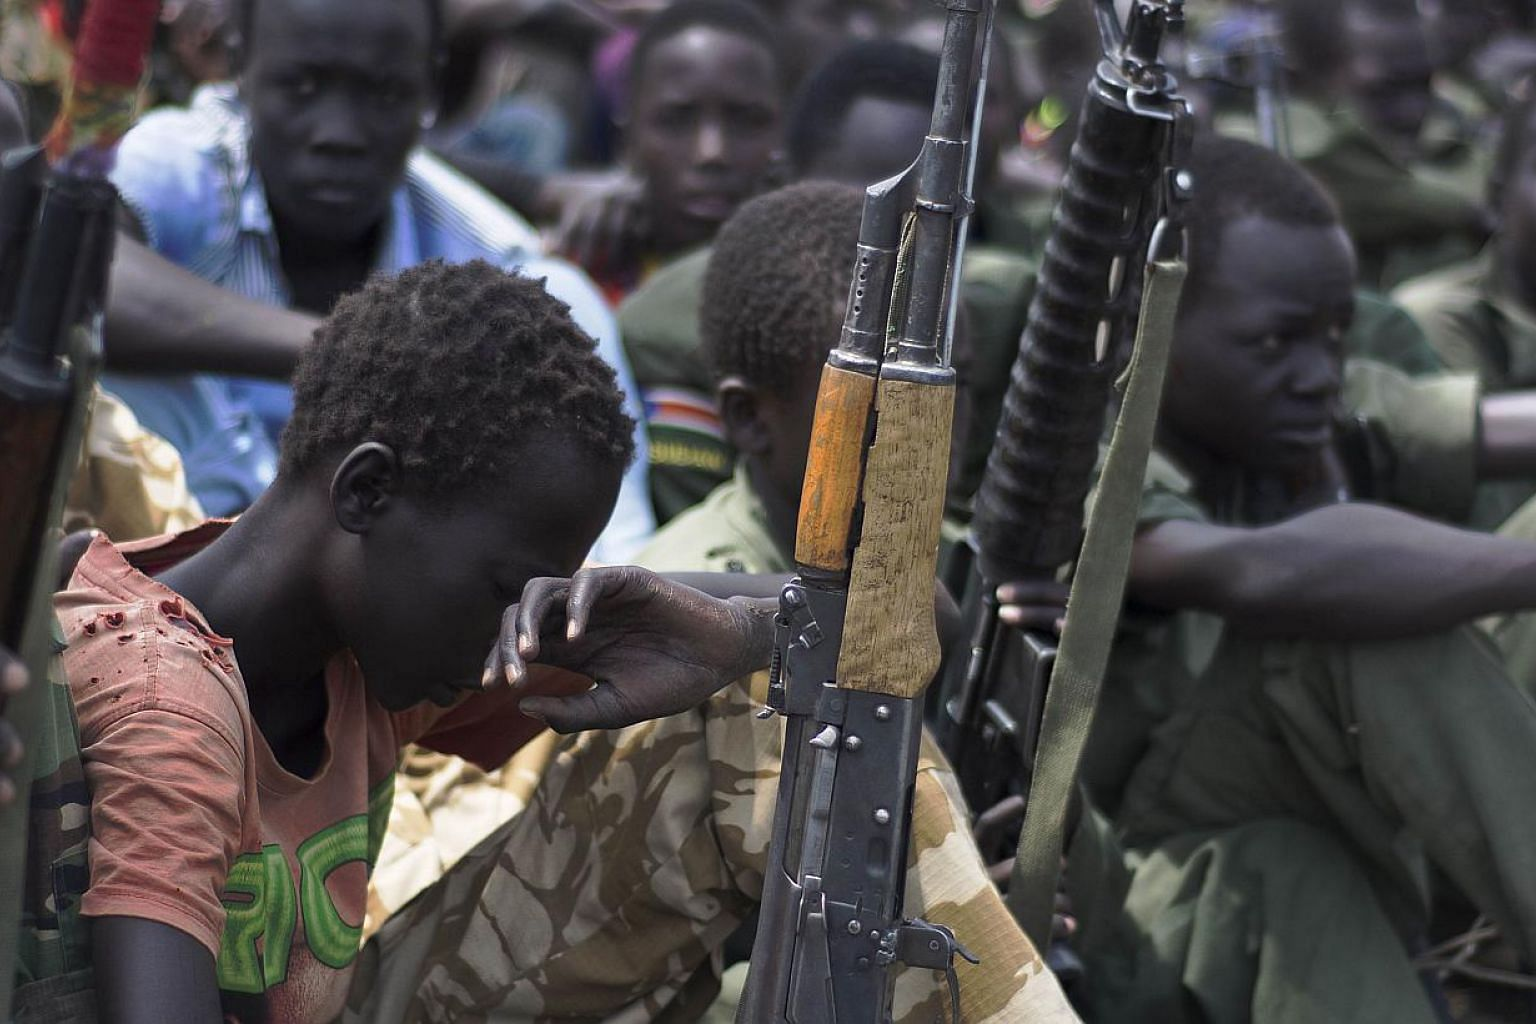 A February 2015 file photo shows child soldiers at a disarmament ceremony in South Sudan.Armed groups in strife-torn Central African Republic released 350 child soldiers Thursday, honouring a deal signed with Unicef, the United Nations children